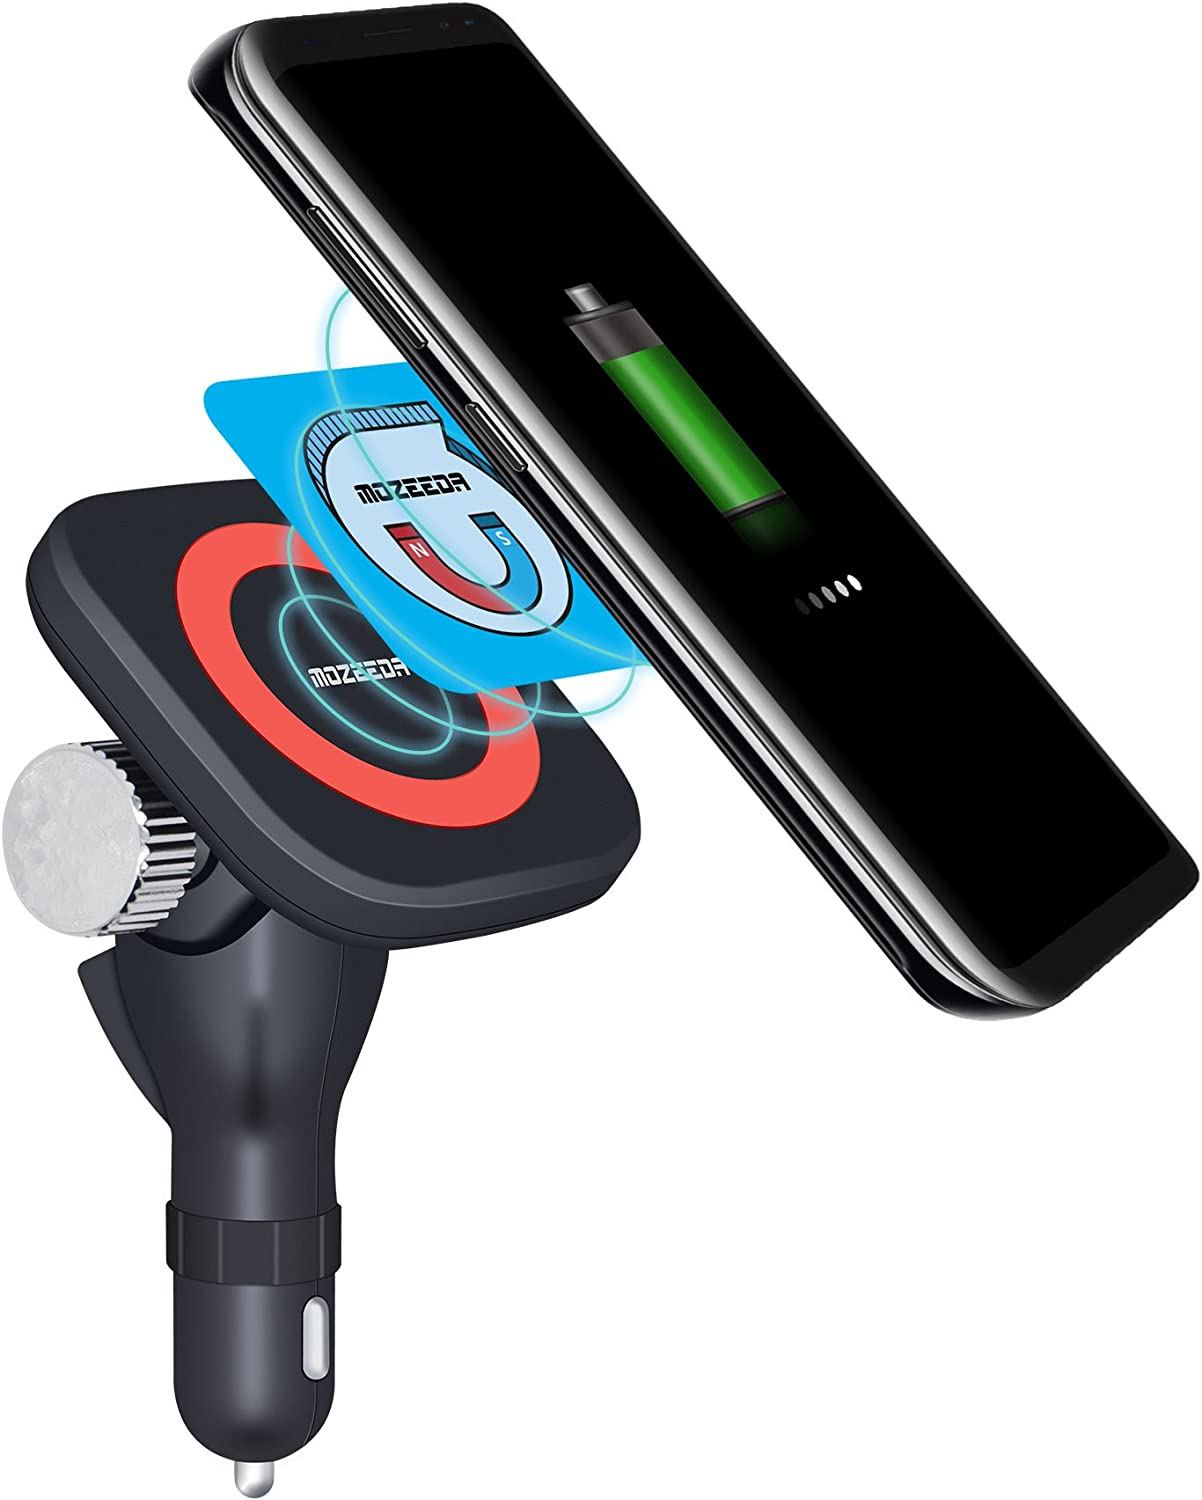 VIEE Wireless Car Charger, Qi Magnetic Wireless Charging Mount 180° Adjustable Cordless Car Charging Cradle for Samsung, iPhone and All Android Smartphones (Car Charger+Smart Magnet)